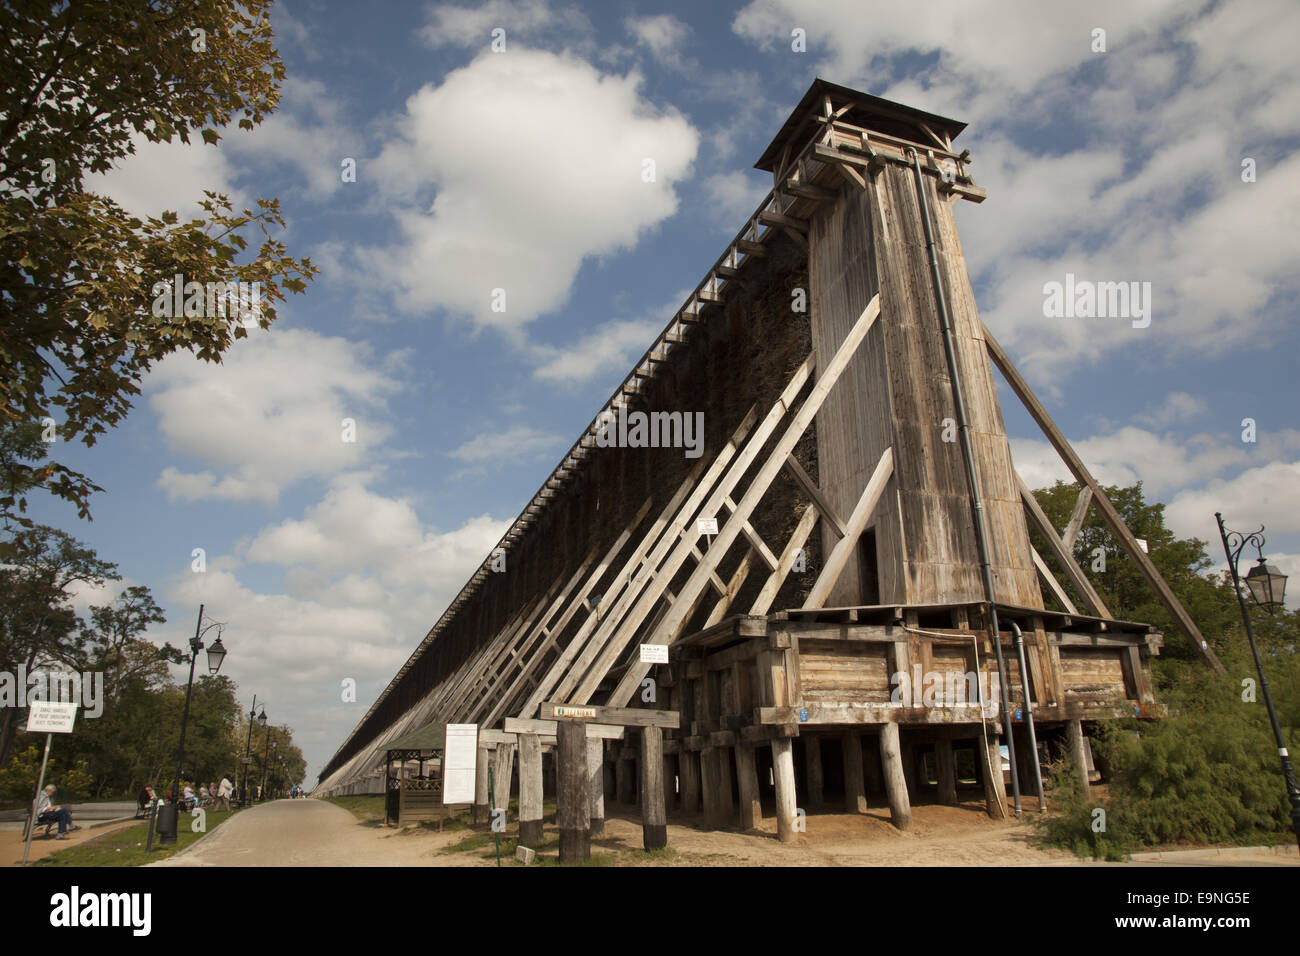 Ciechocinek, Poland: The biggest wooden construction of Brine graduation towers in Europe. Health structure that - Stock Image